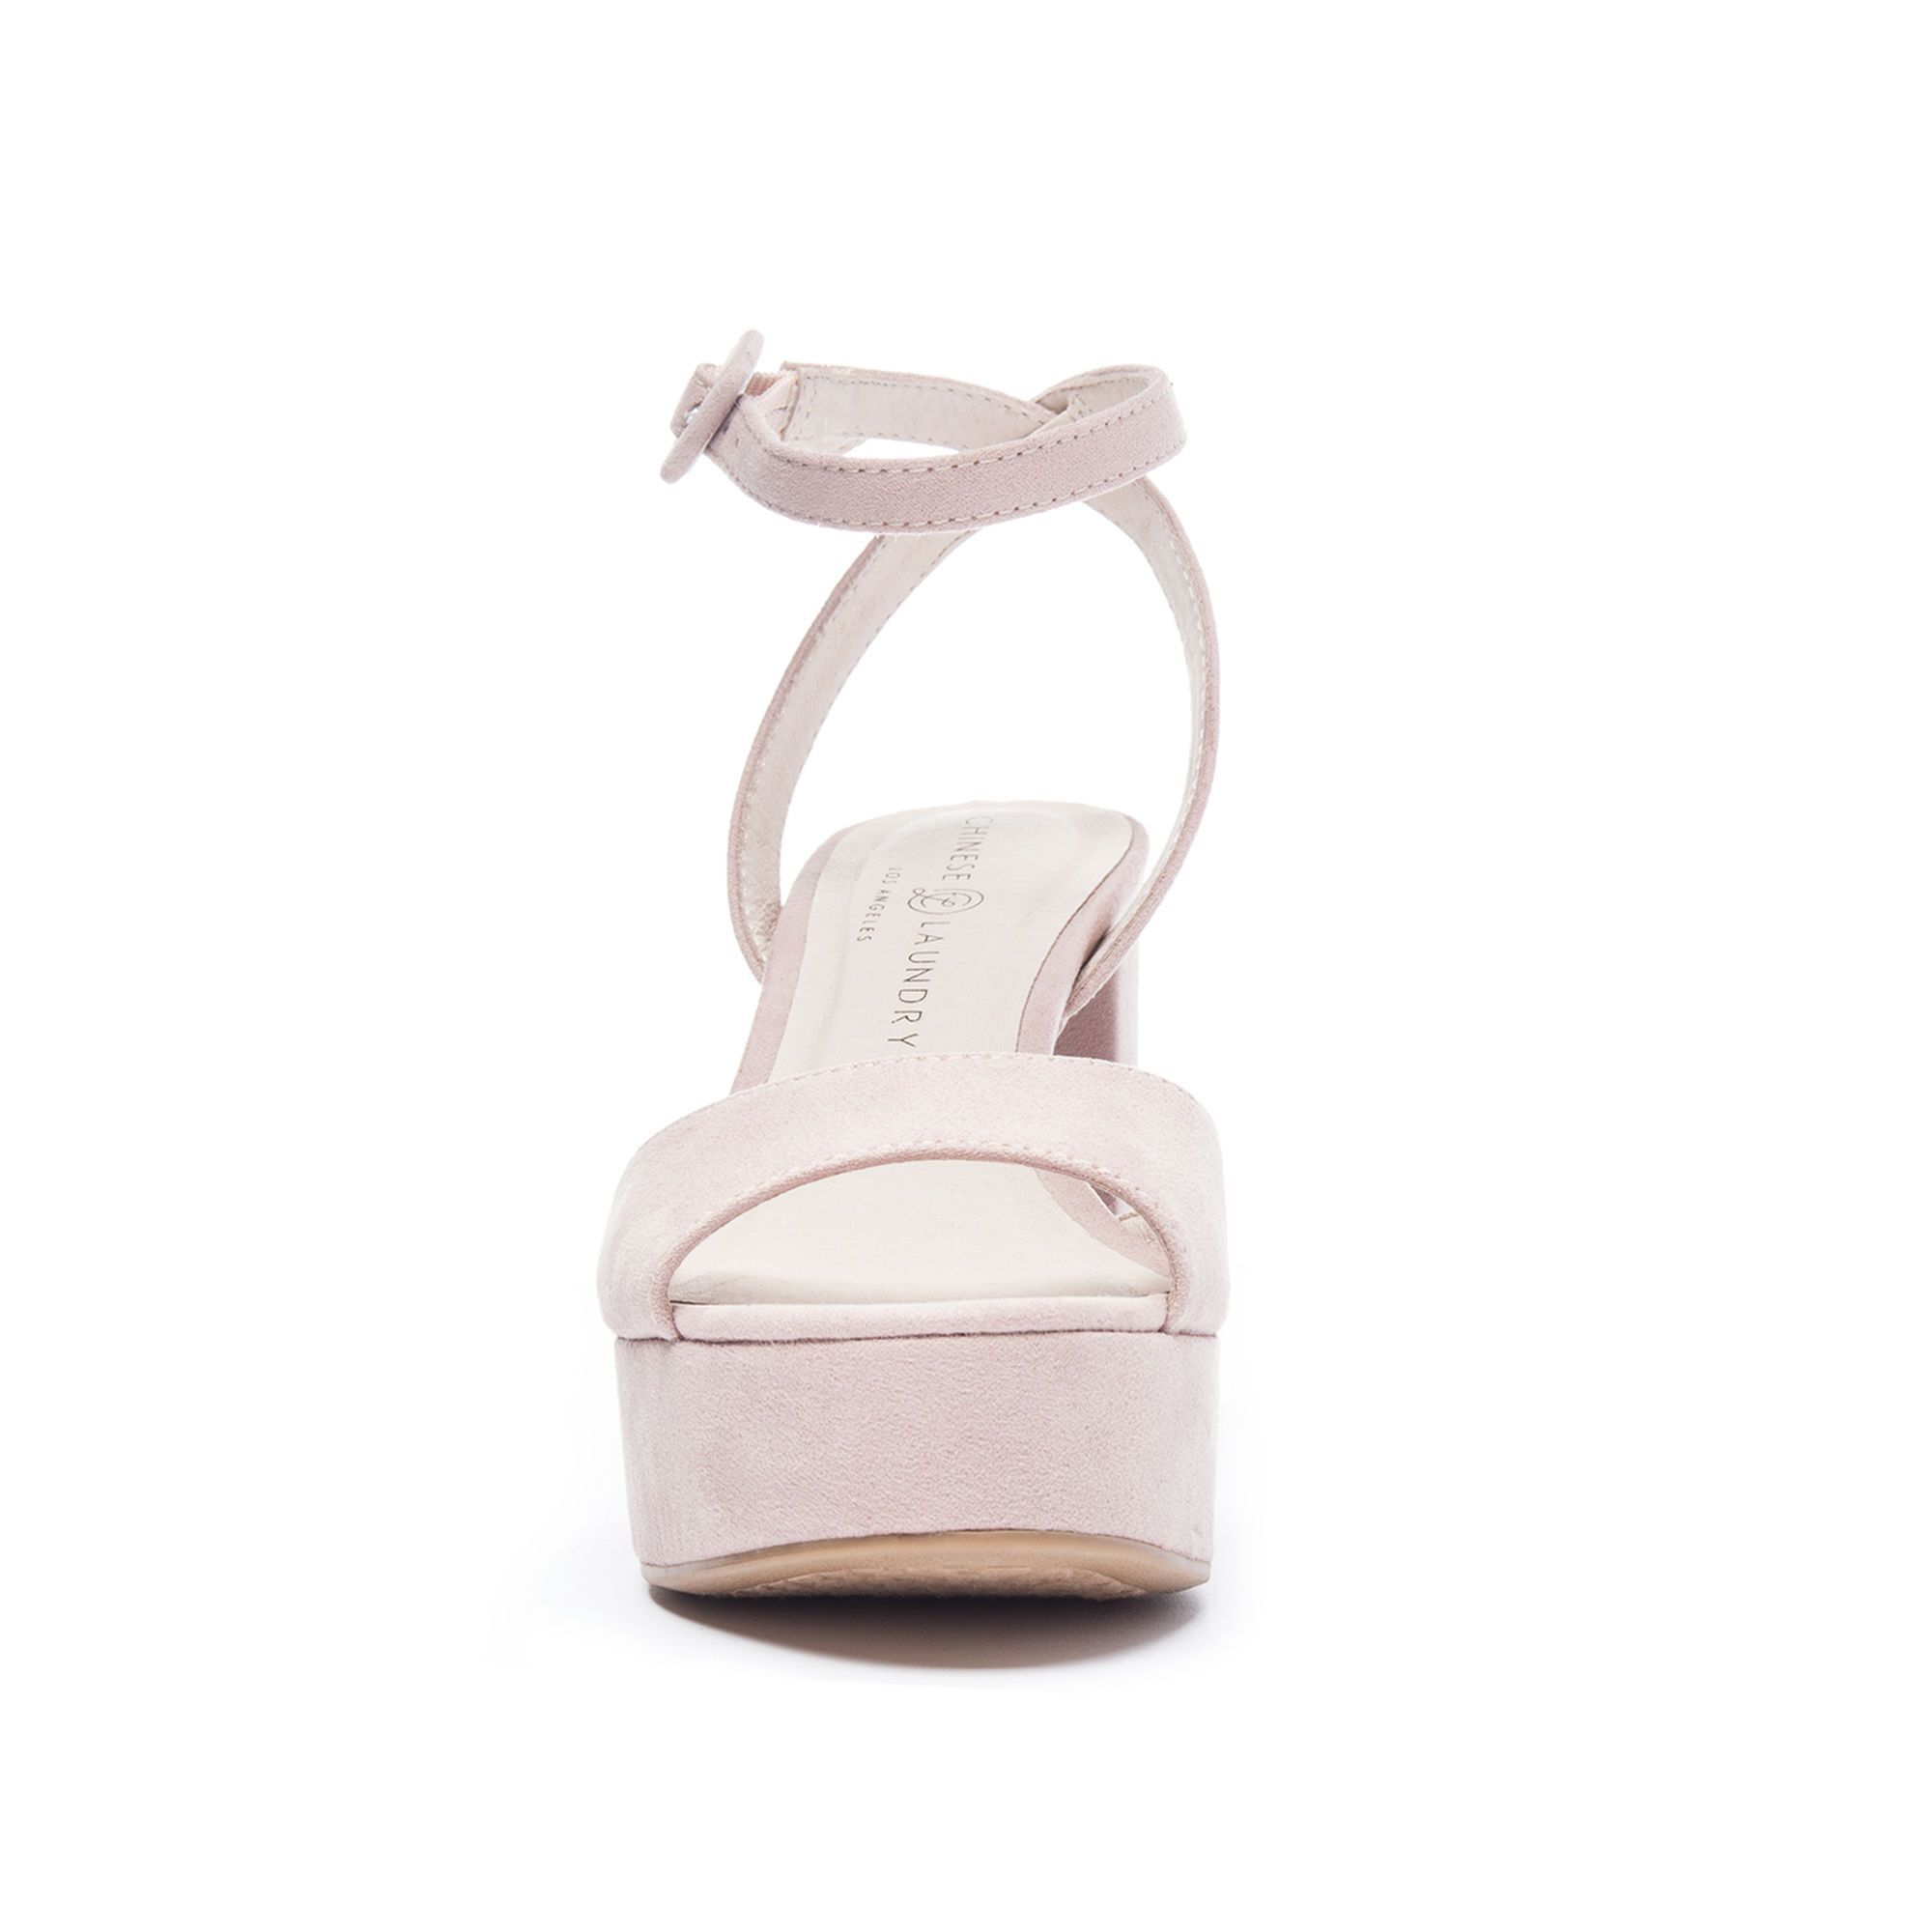 Theresa By Chinese Laundry Grey Heels Sandals Shoes